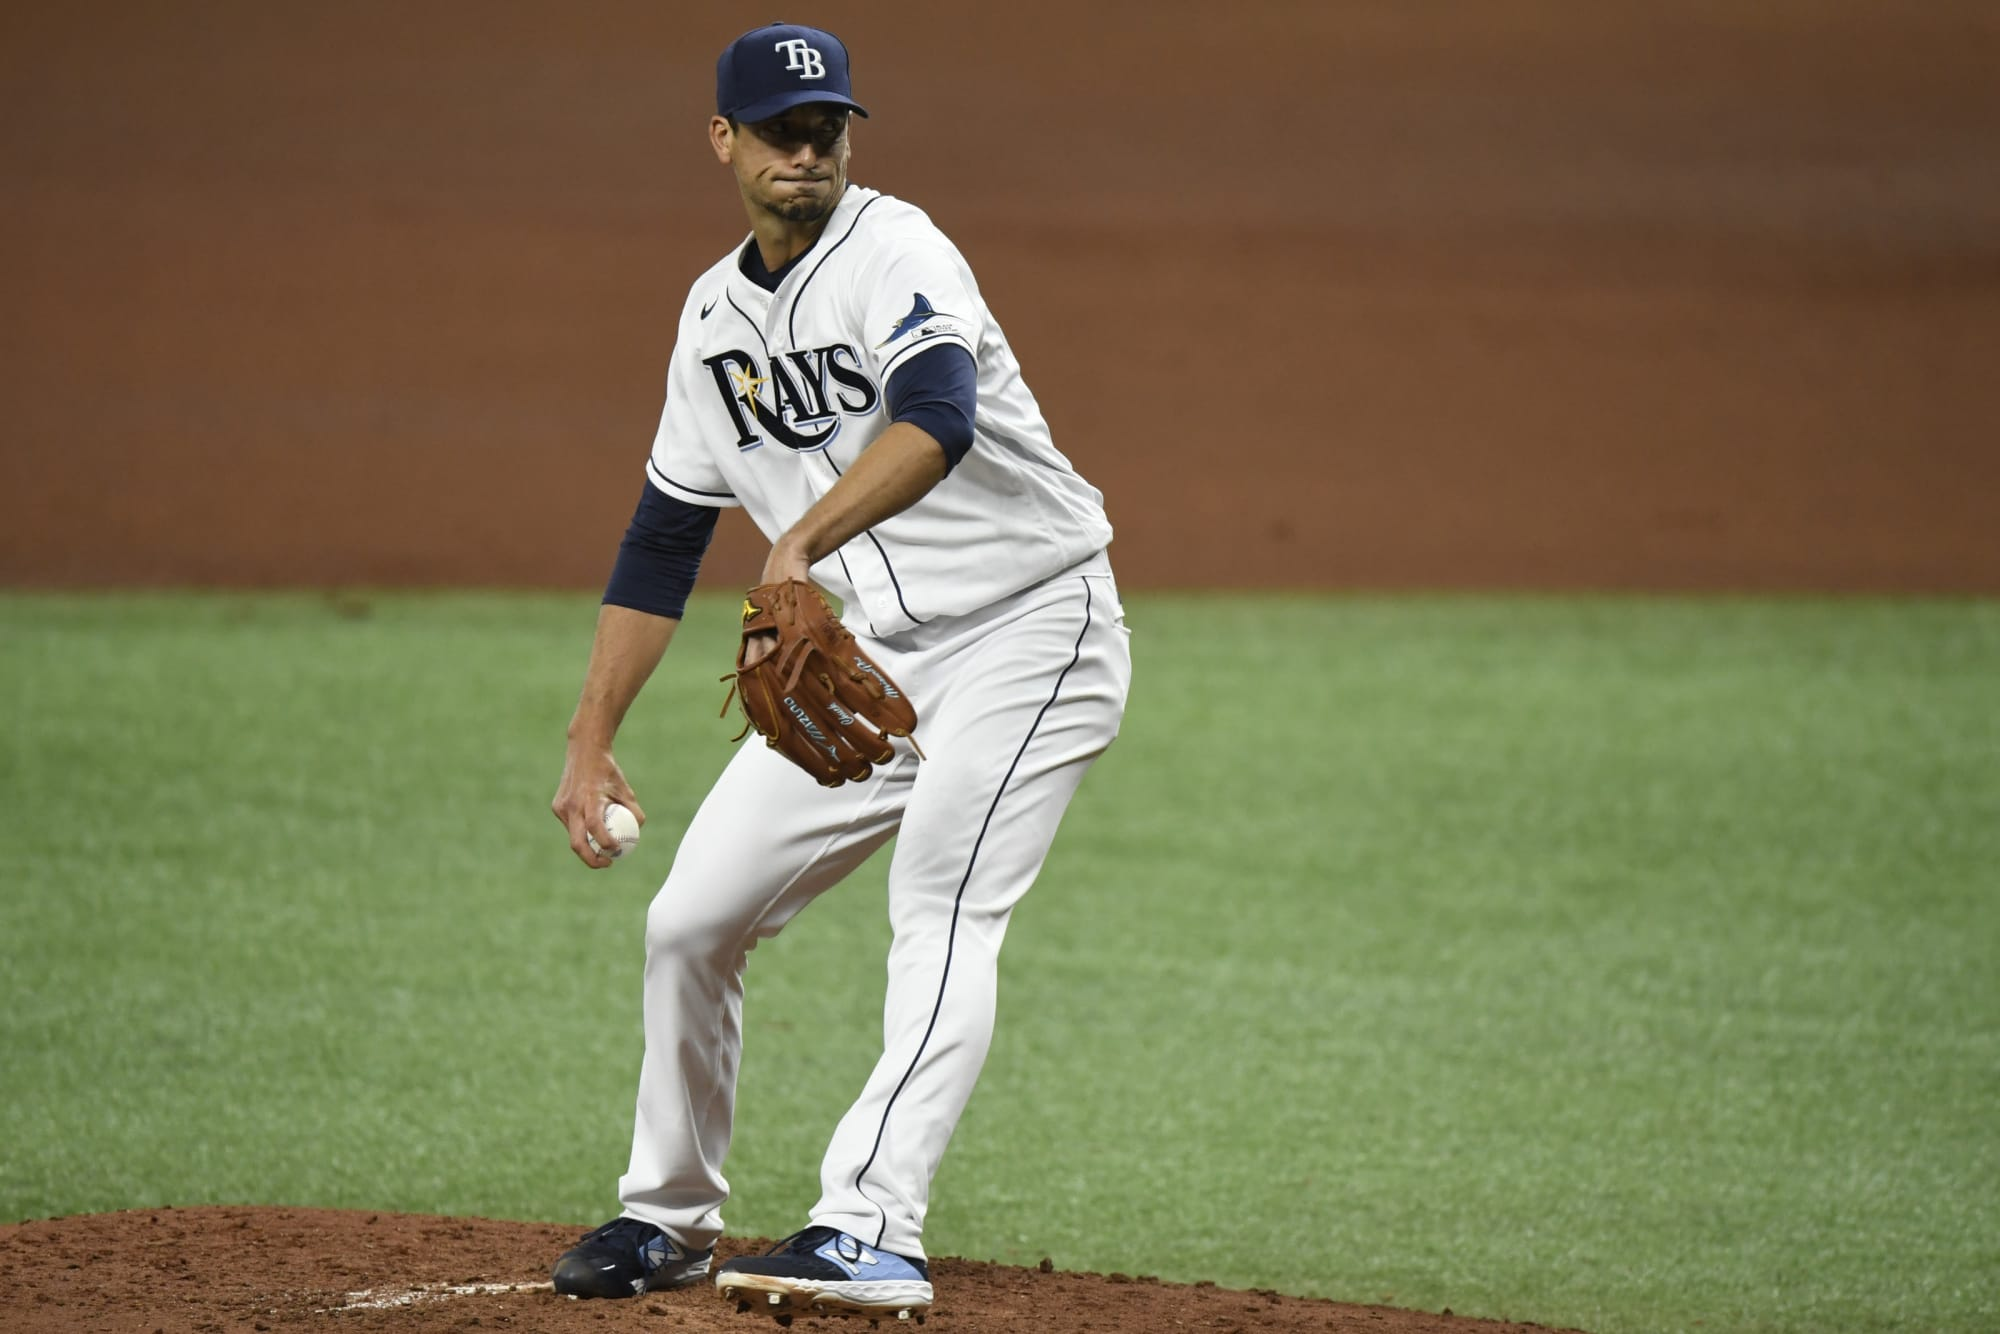 tampa bay rays charlie morton pitches well in loss to braves tampa bay rays charlie morton pitches